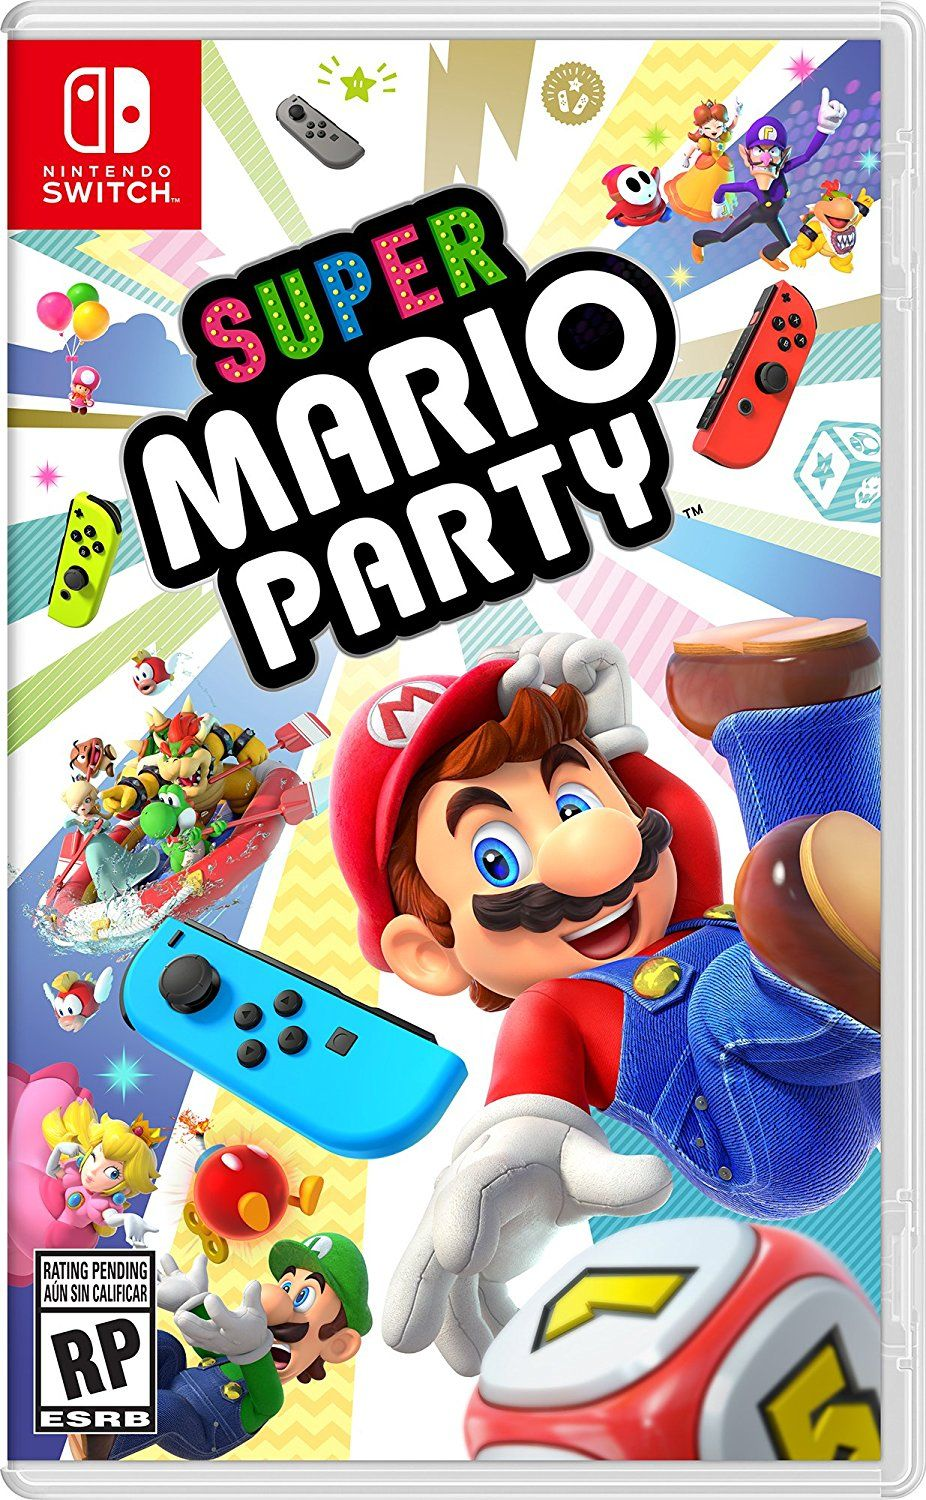 Super Mario Party Nintendo Switch Release Date December 28 2018